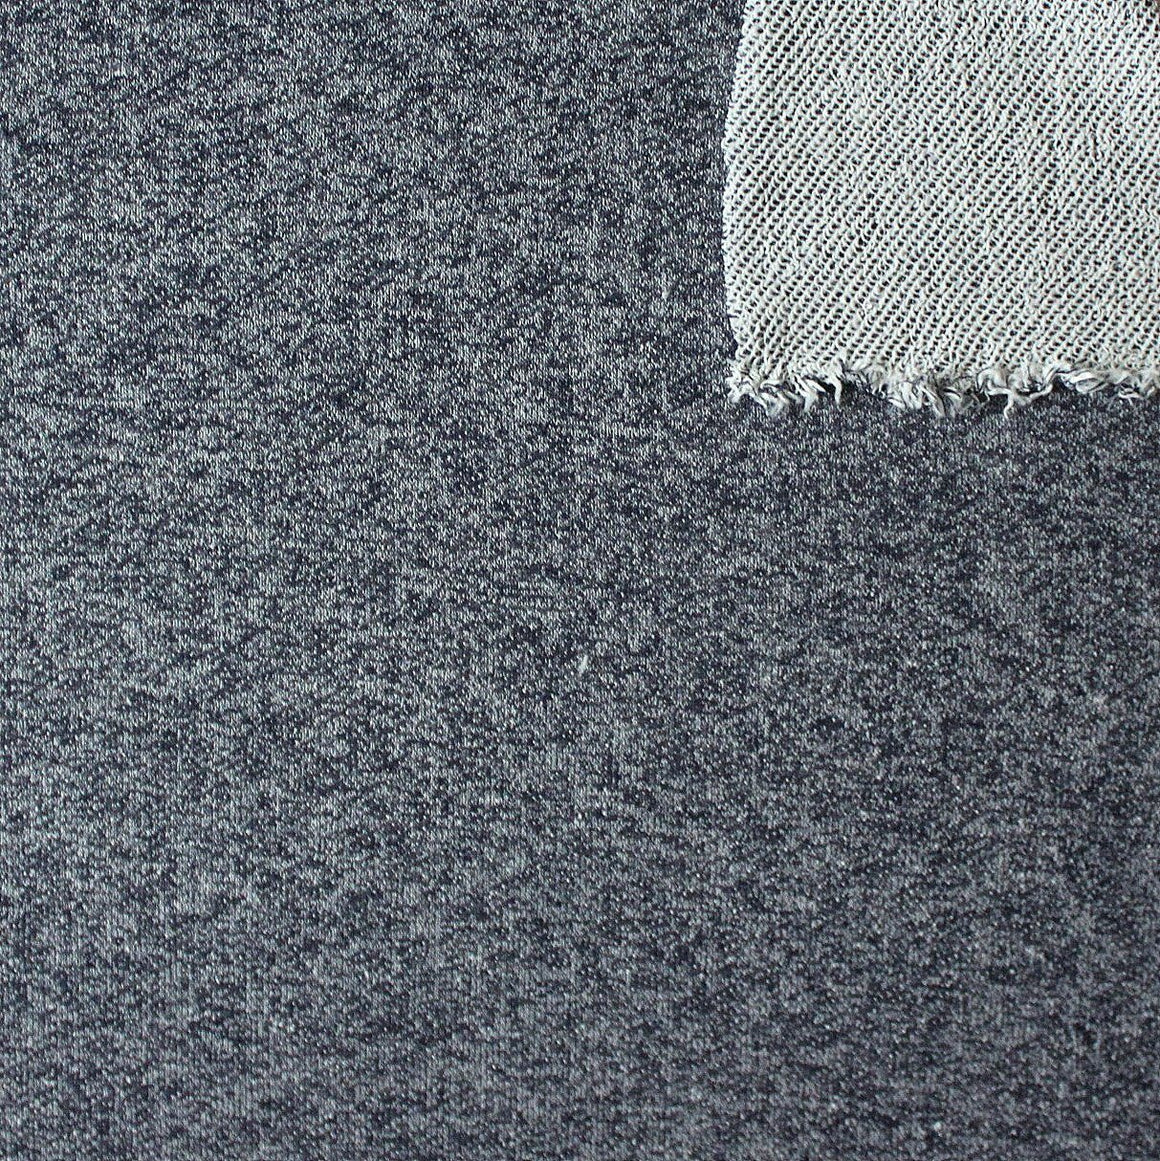 Navy Blue Heathered French Terry Knit Sweatshirt Fabric, 1 Yard